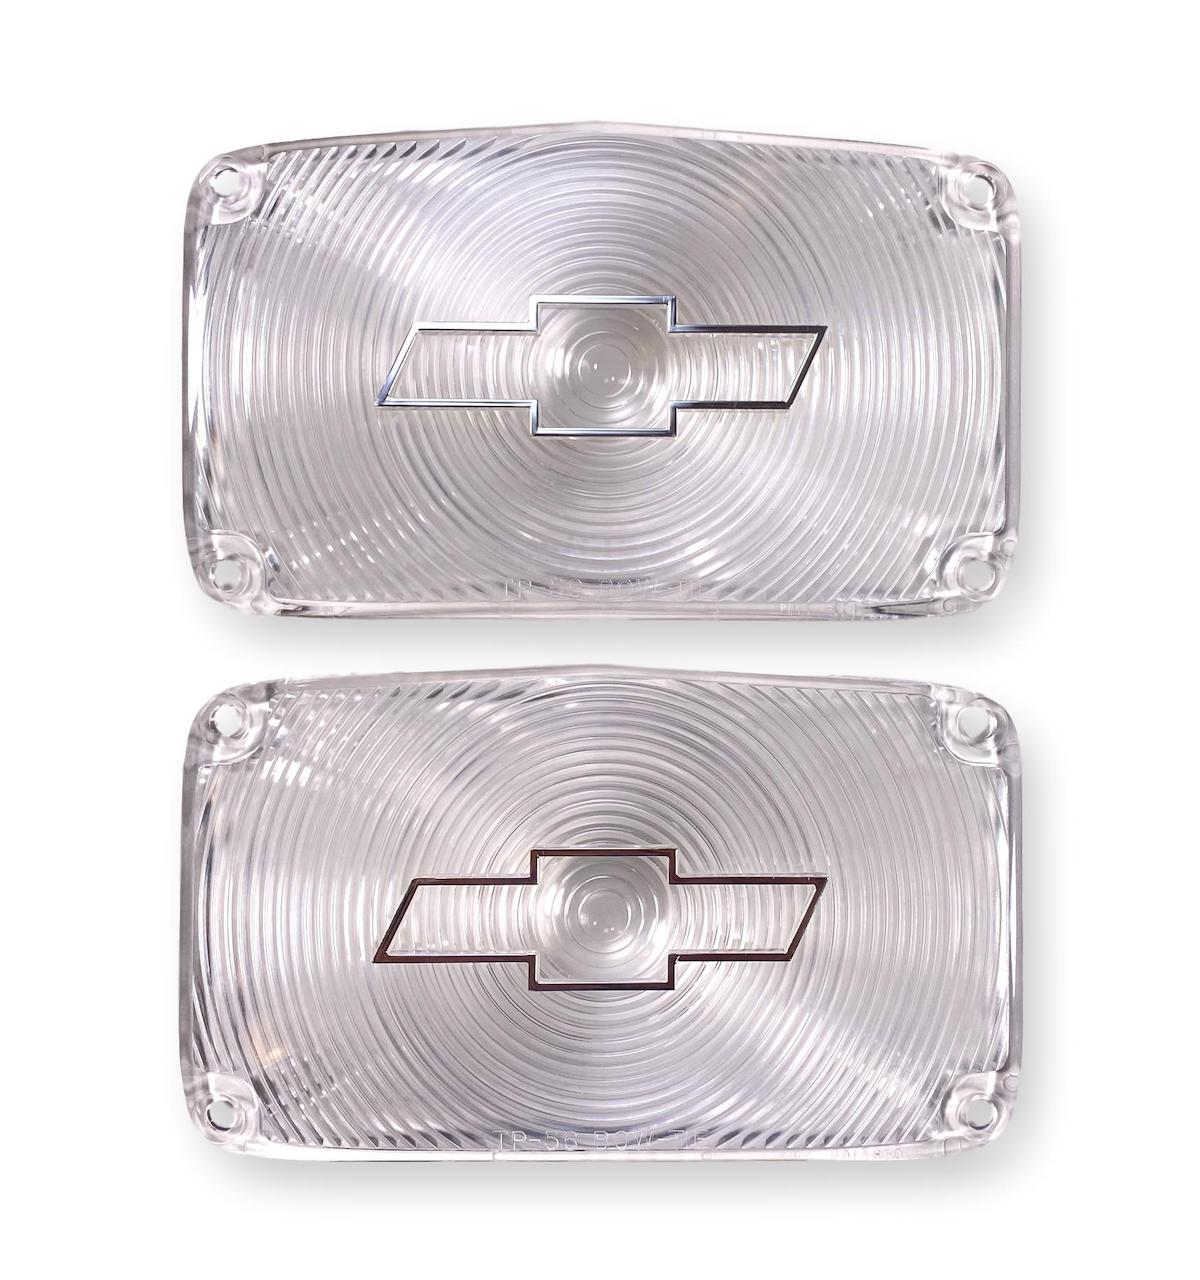 1956 Chevy Clear Parklight Lenses with Bowtie and Chrome Trim